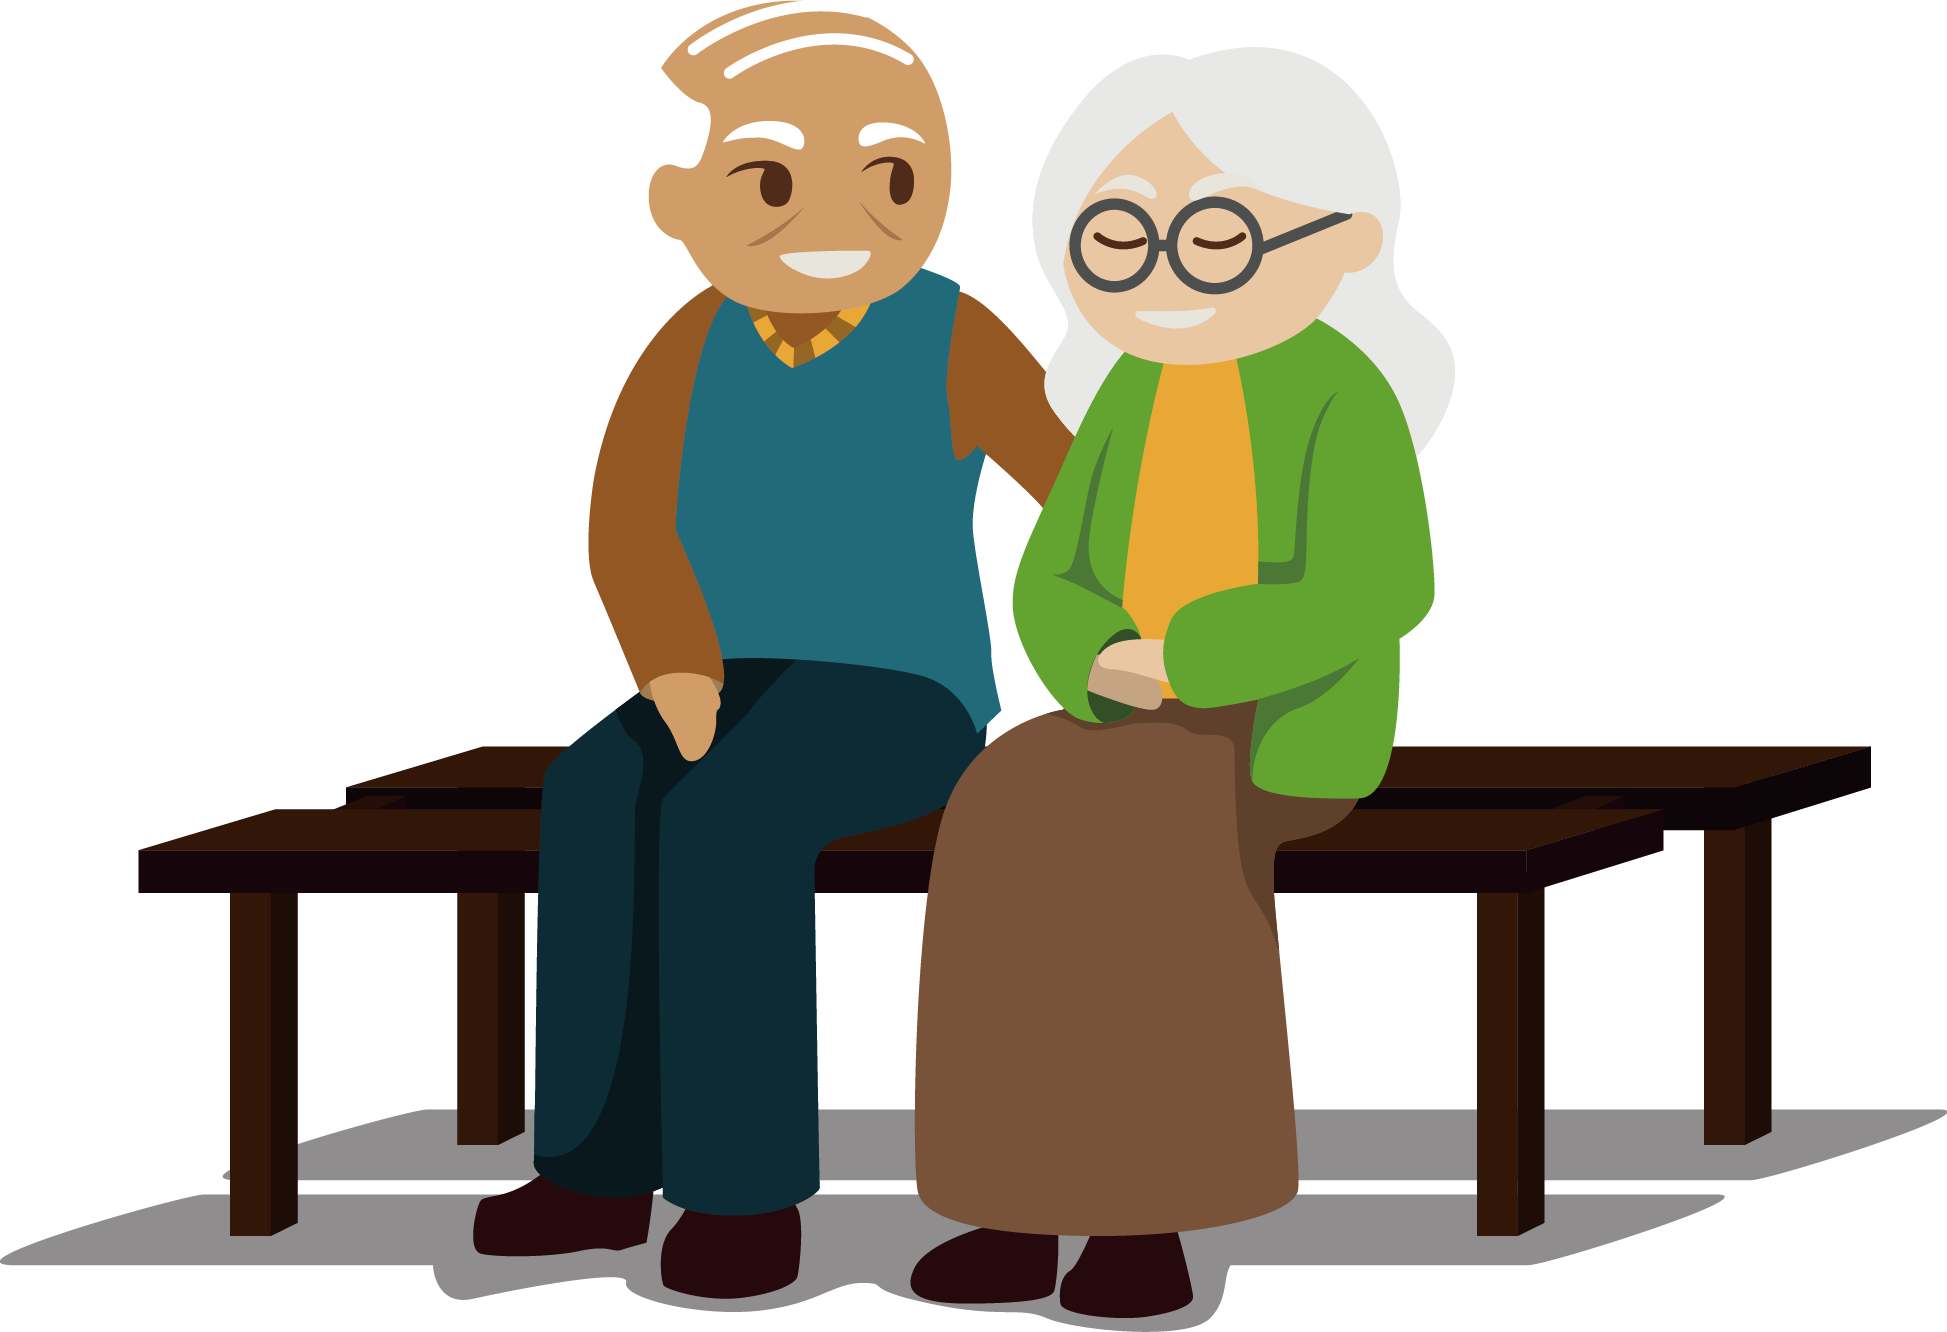 Retired people clipart graphic black and white download Grandparents clipart retired couple, Grandparents retired ... graphic black and white download